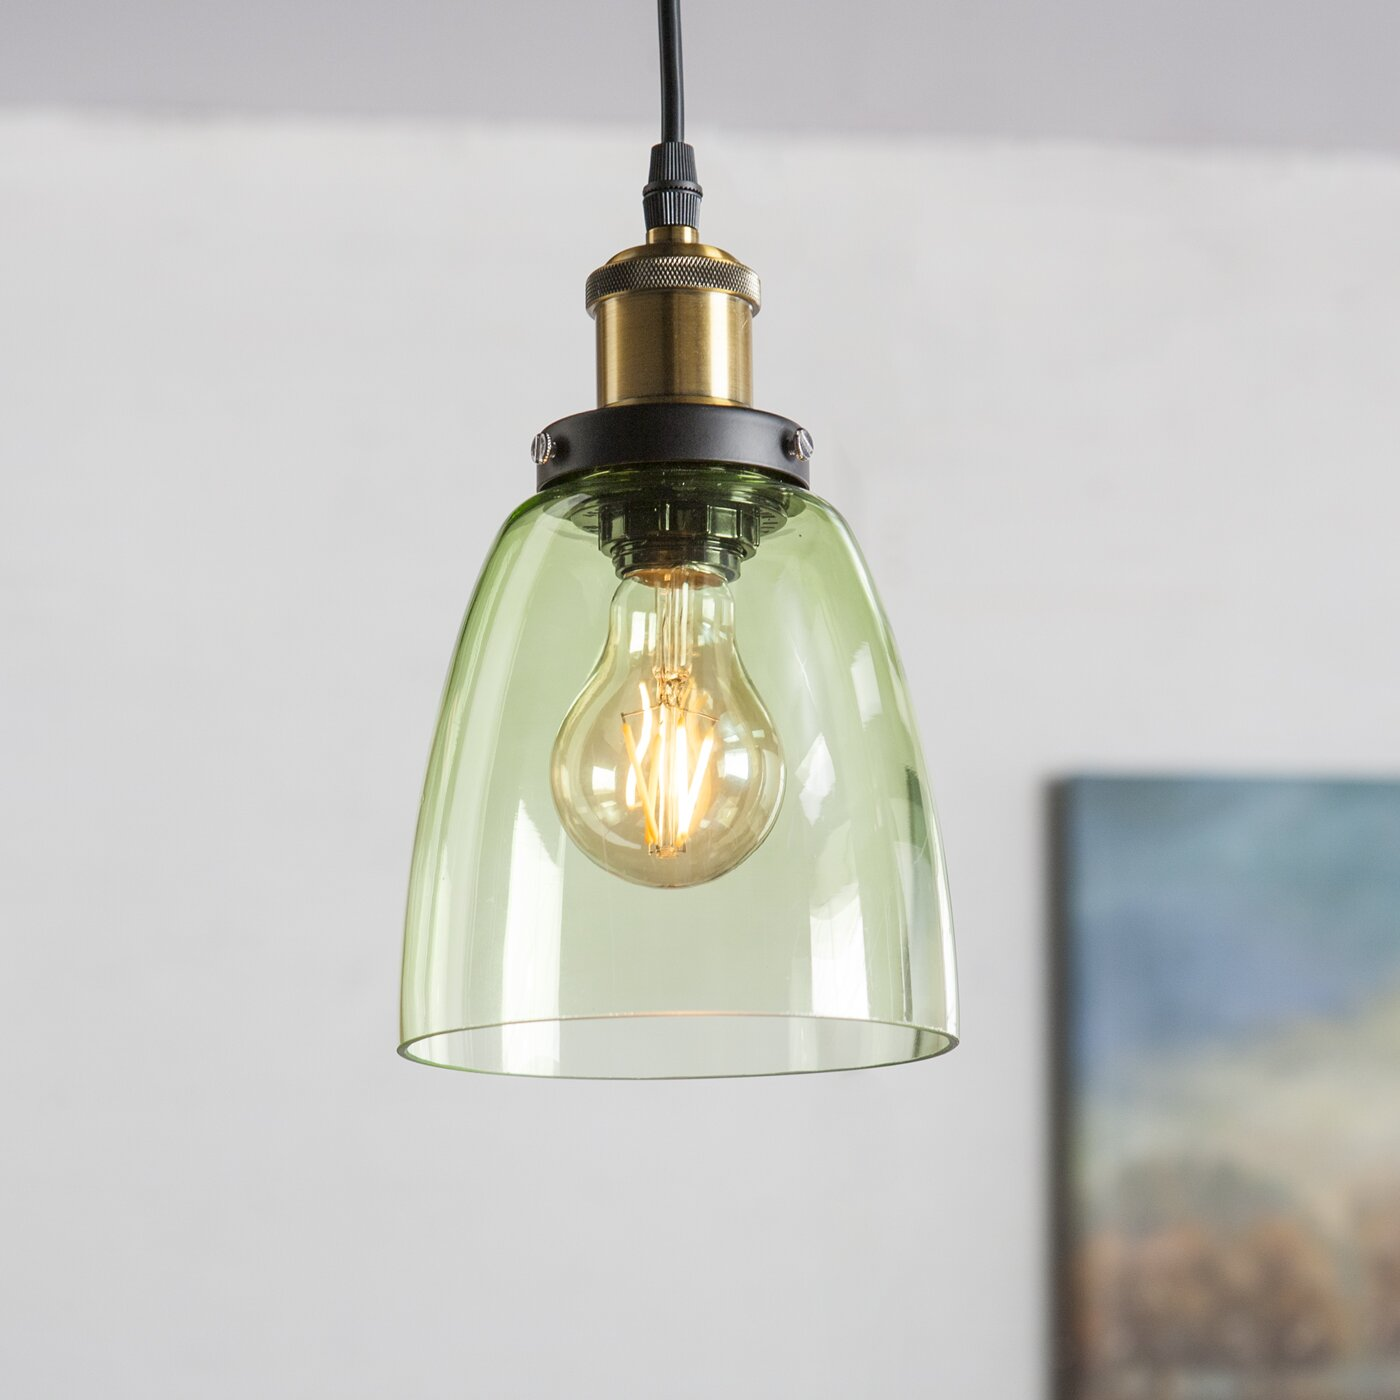 Laurel Foundry Modern Farmhouse Ethelyn 1 Light Mini Pendant